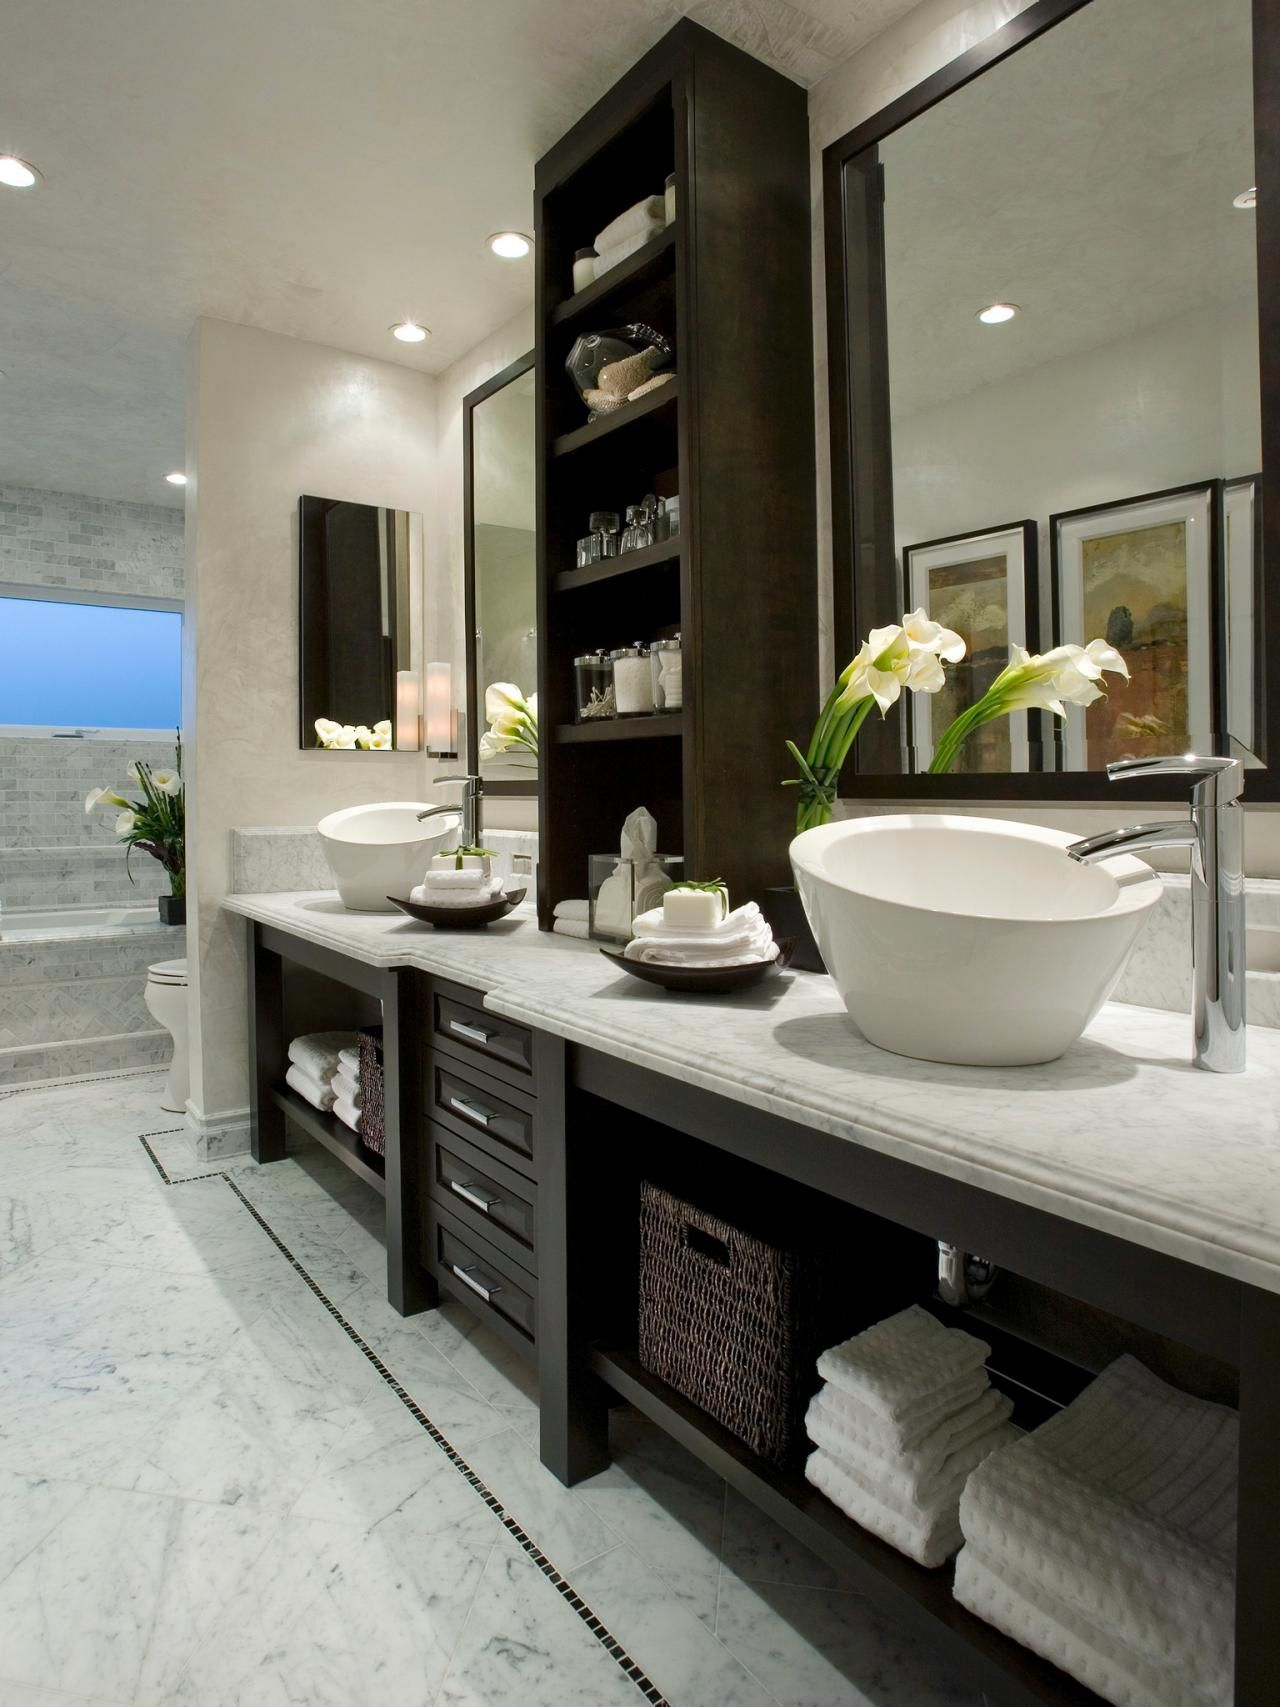 Top 50 Pinterest Gallery 2014 Spa Inspired Bathroom Modern Master Bathroom Bathroom Remodel Images